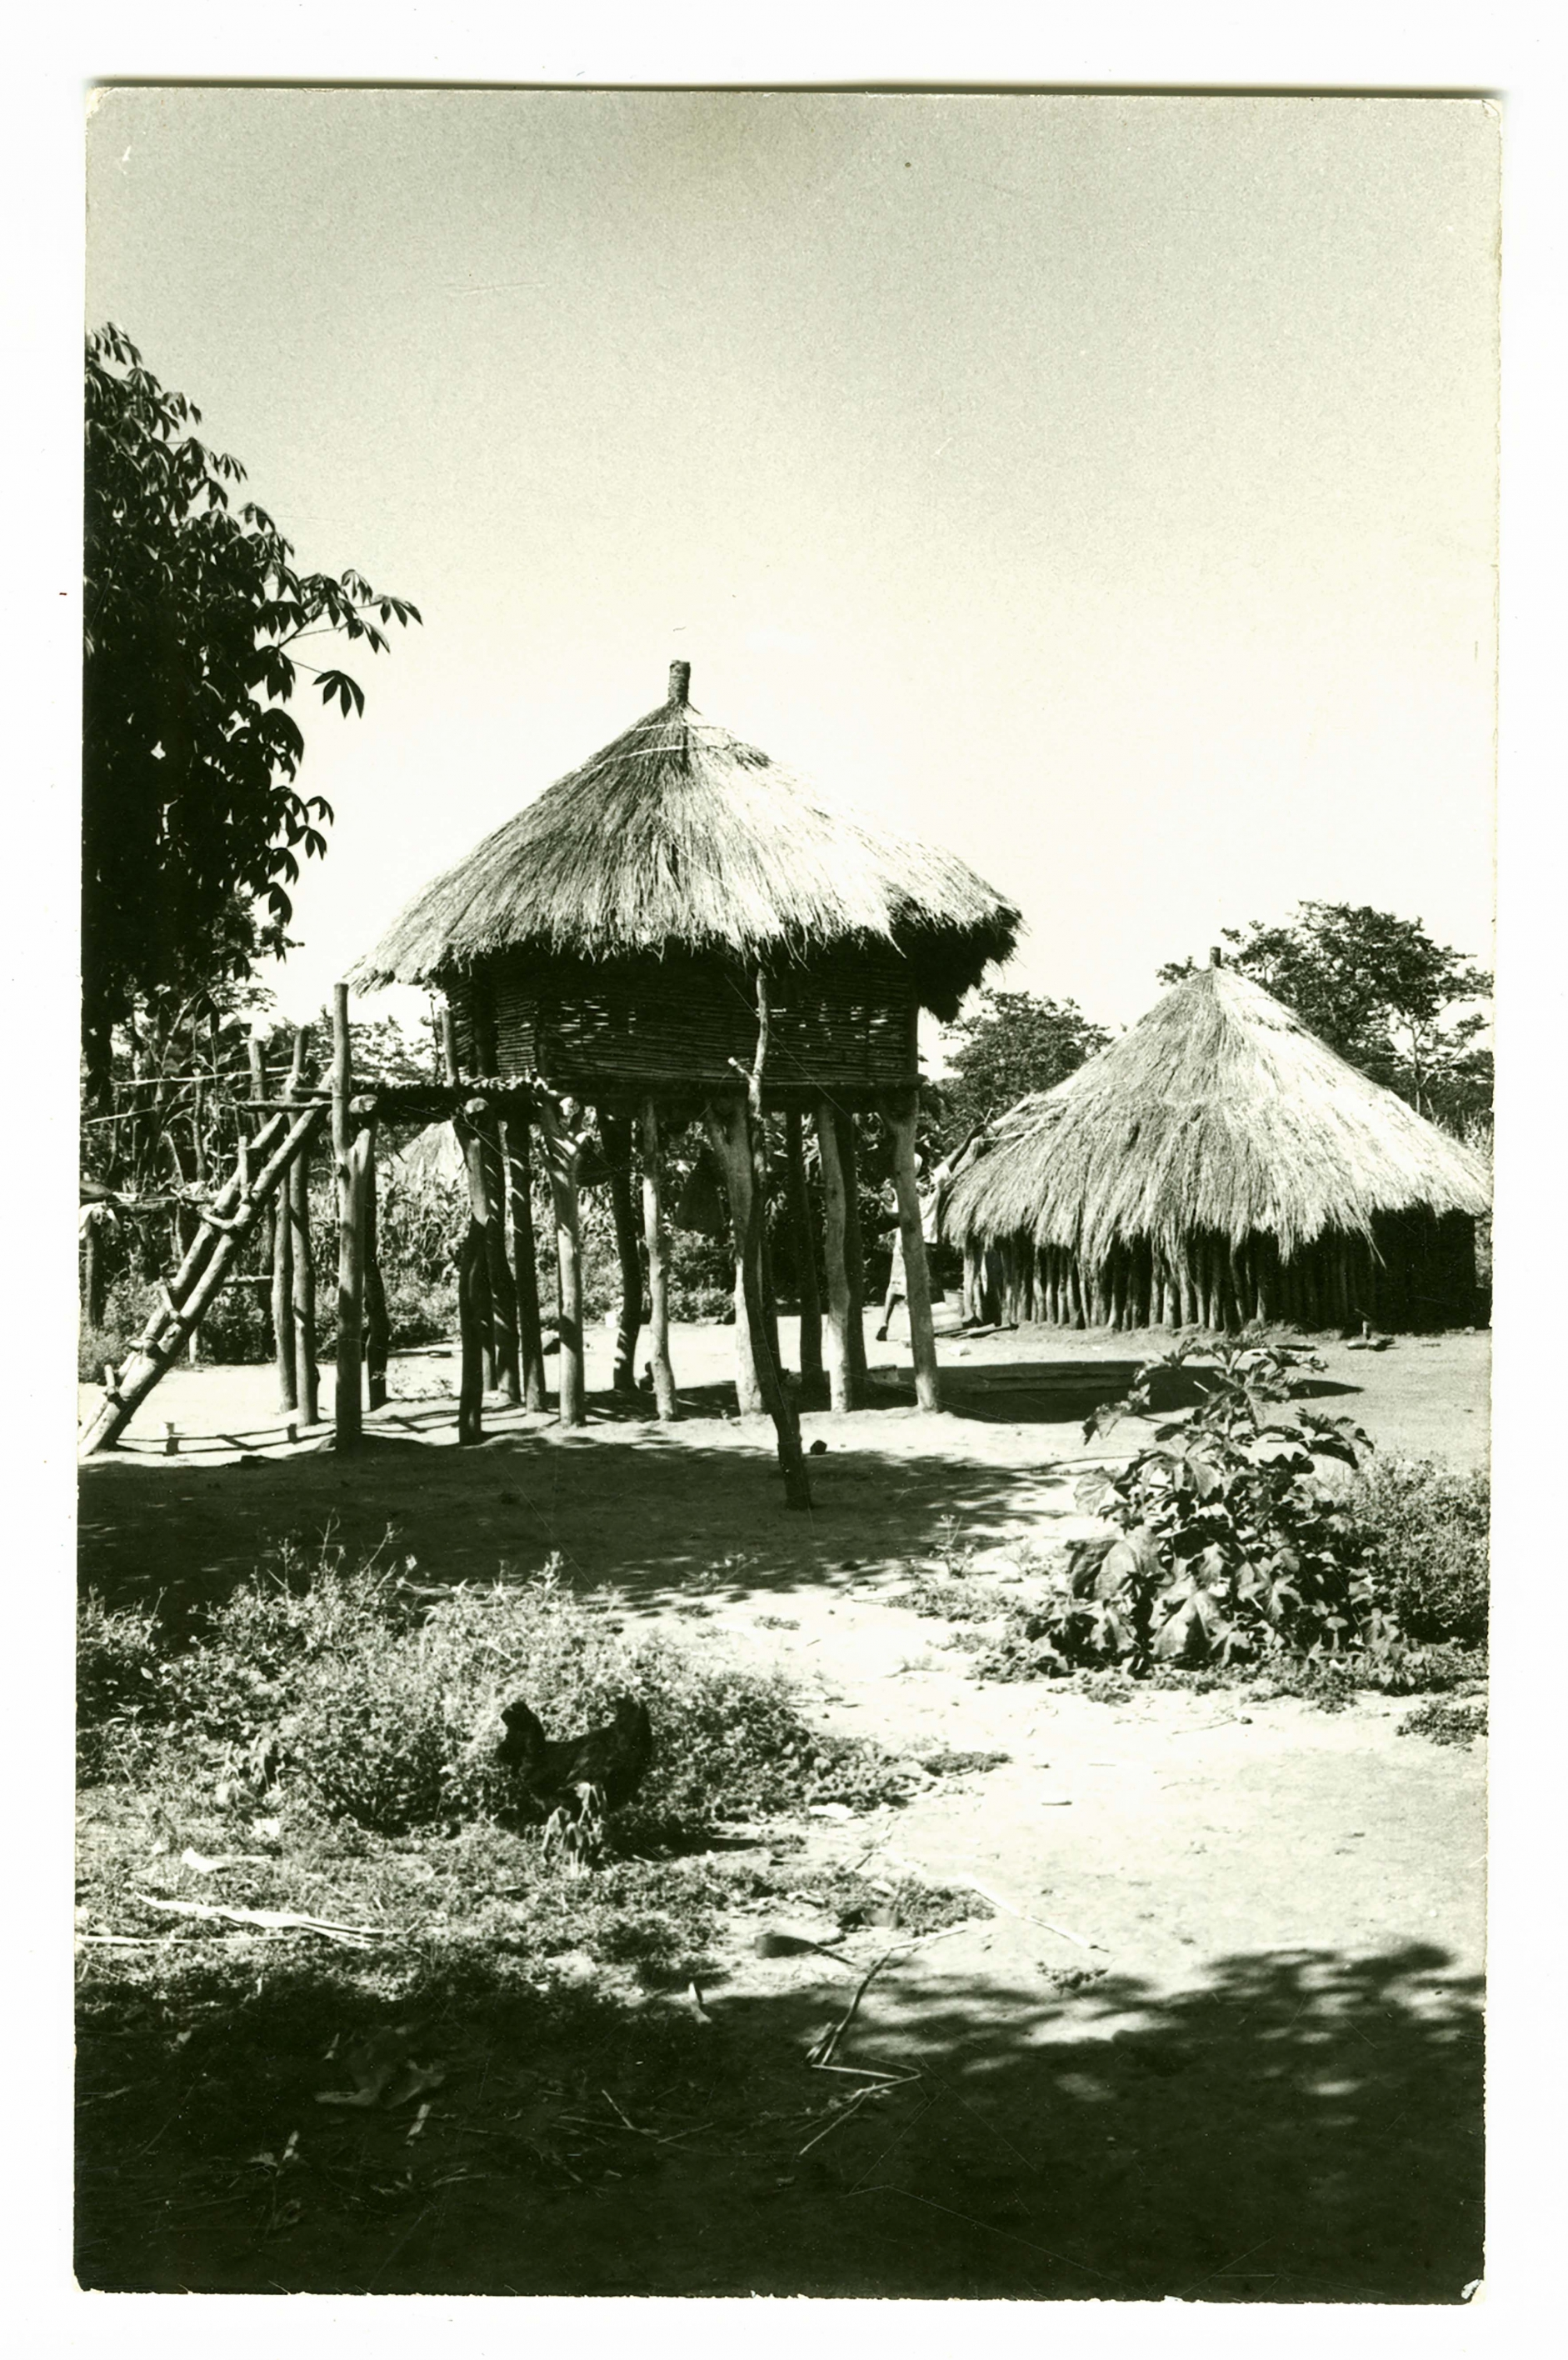 A traditional hut on stilts